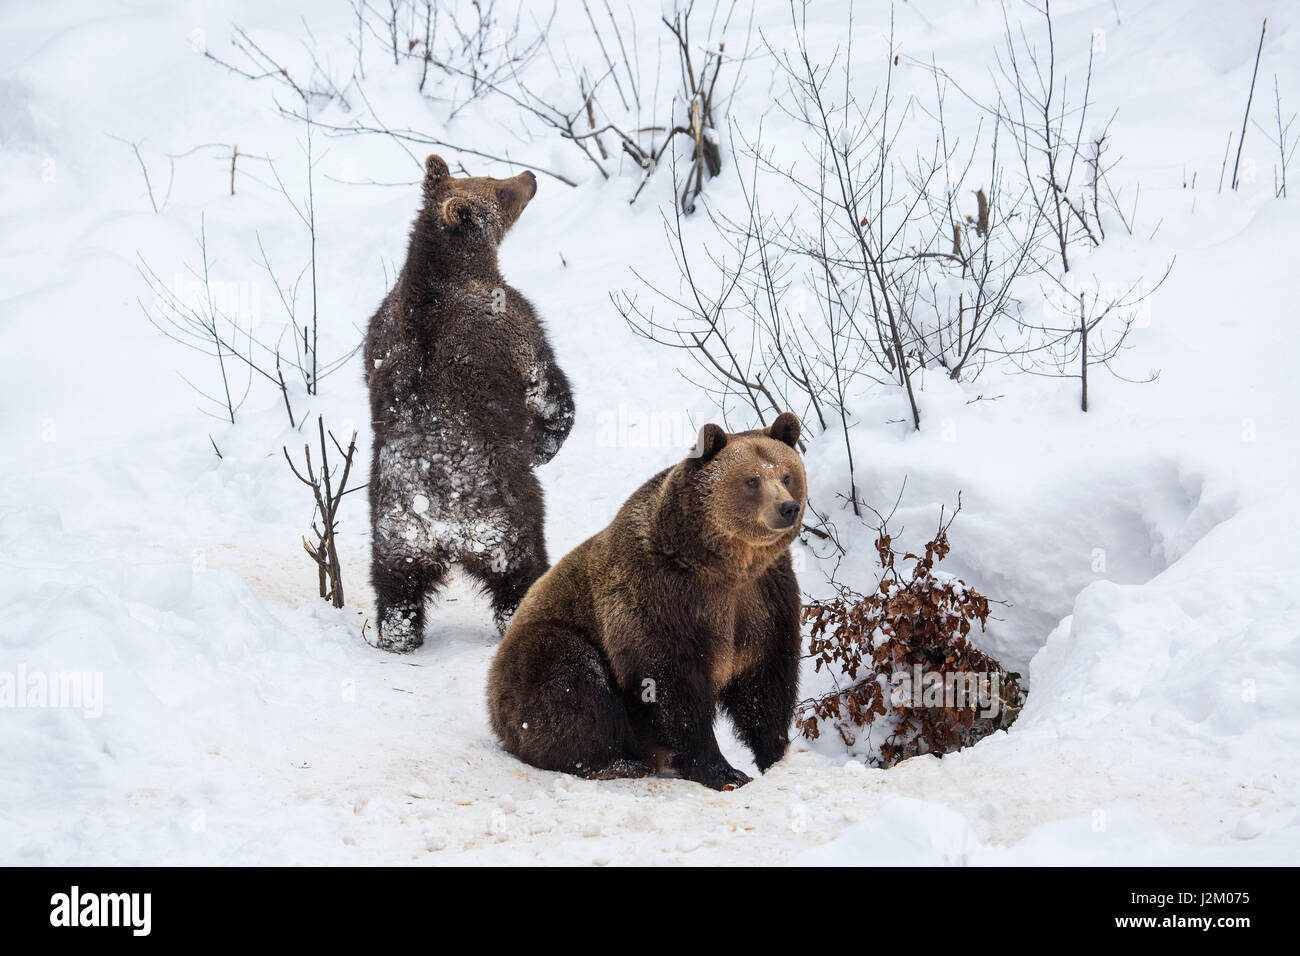 Female and 1-year-old brown bear cub (Ursus arctos arctos) leaving den in the snow in winter - Stock Image